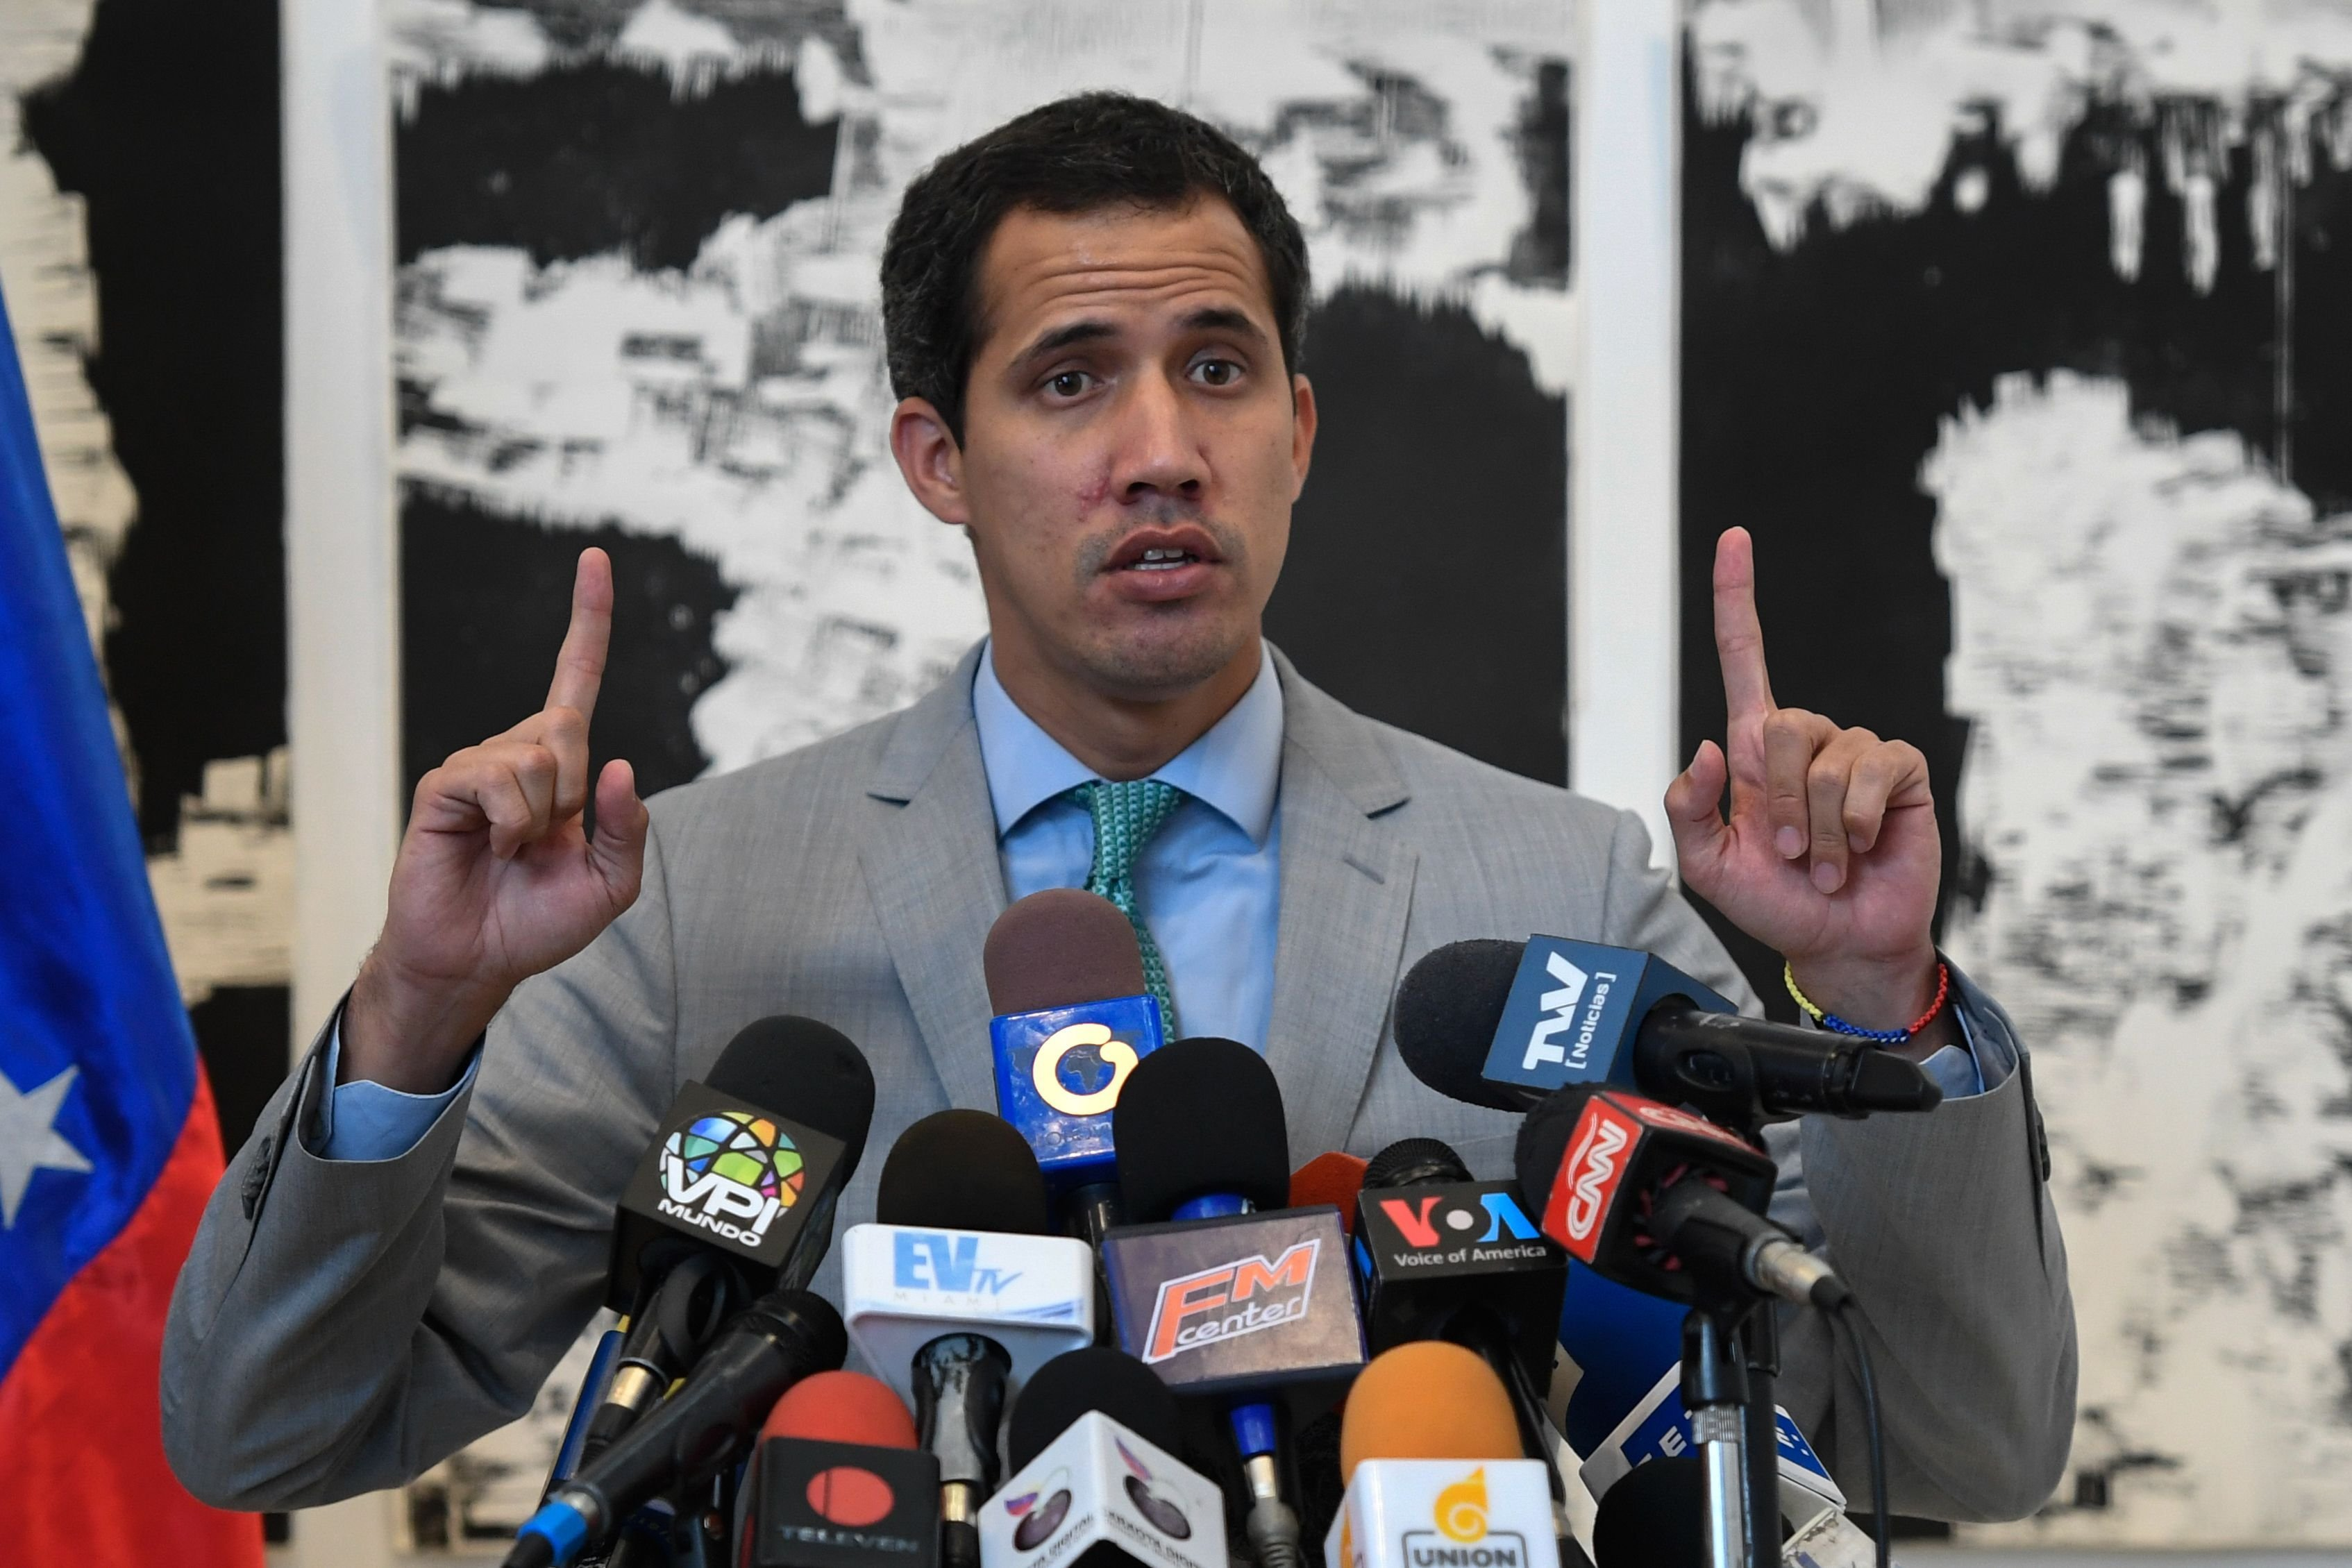 State Department looking at redirecting Central American aid to Guaido